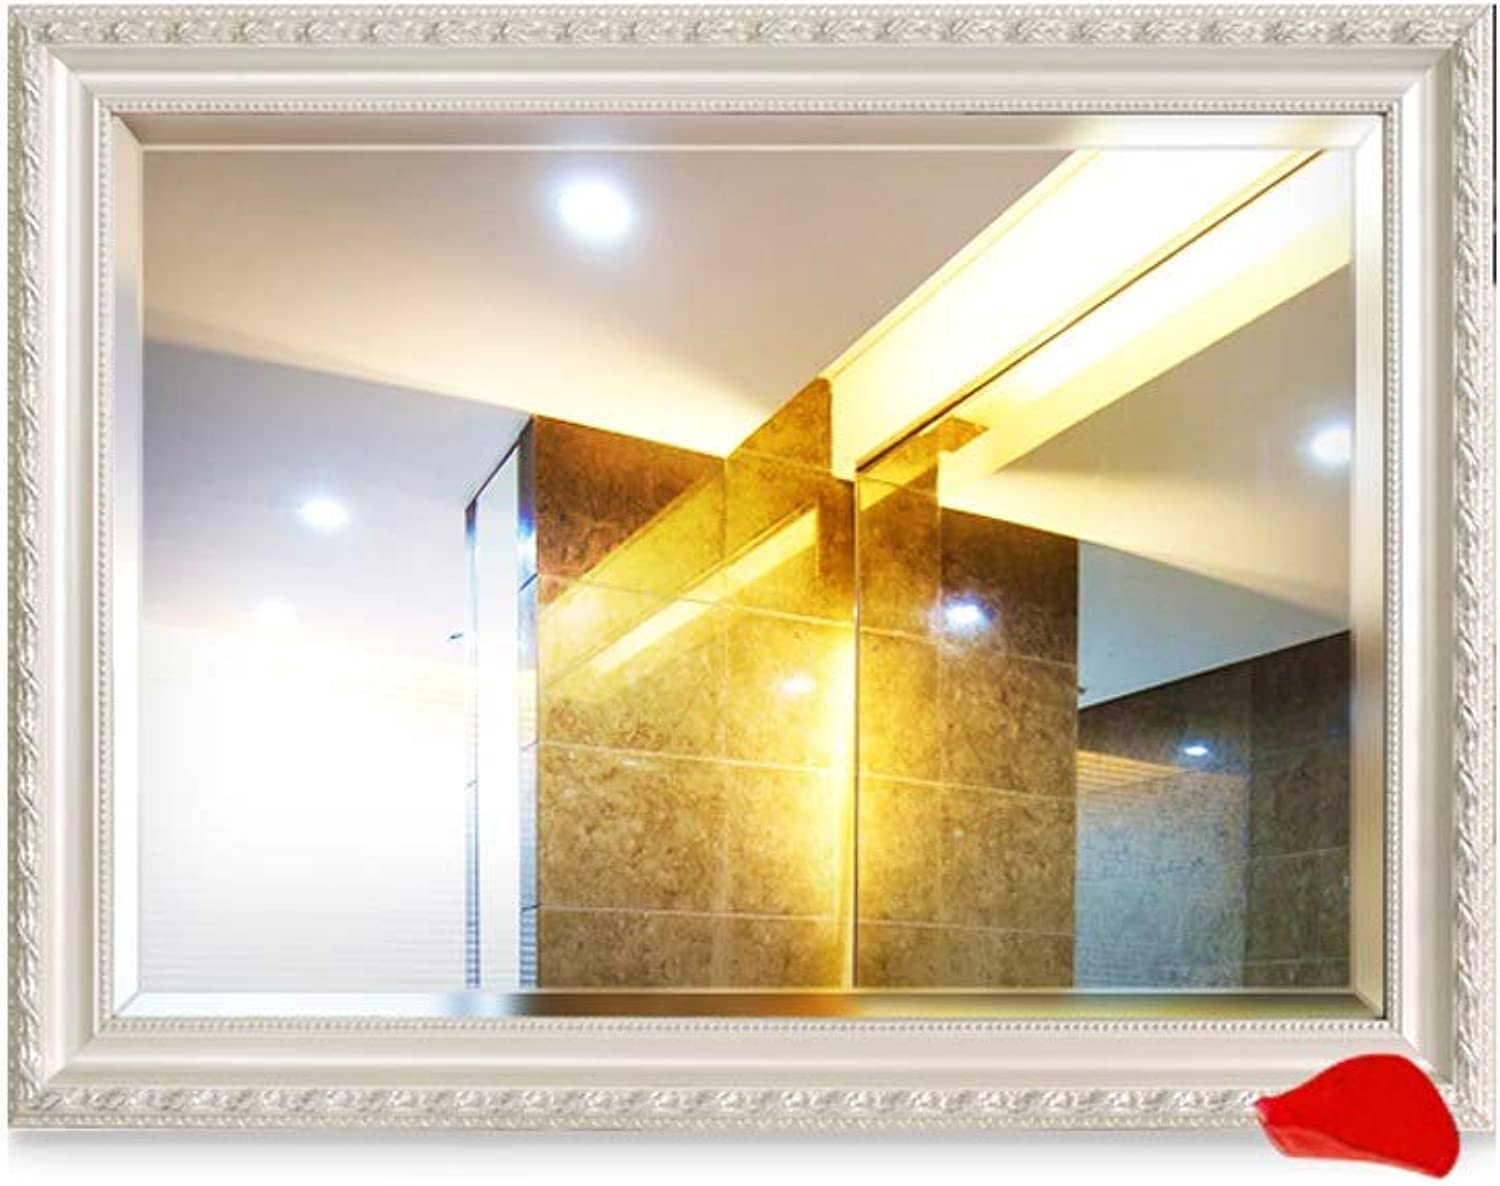 JUCAIYUAN Mirror White Wooden Border Bathroom Mirror European Wall Hanging Bathroom Mirror Bathroom Mirror Wash Mirror (Size   45cmX60cm)